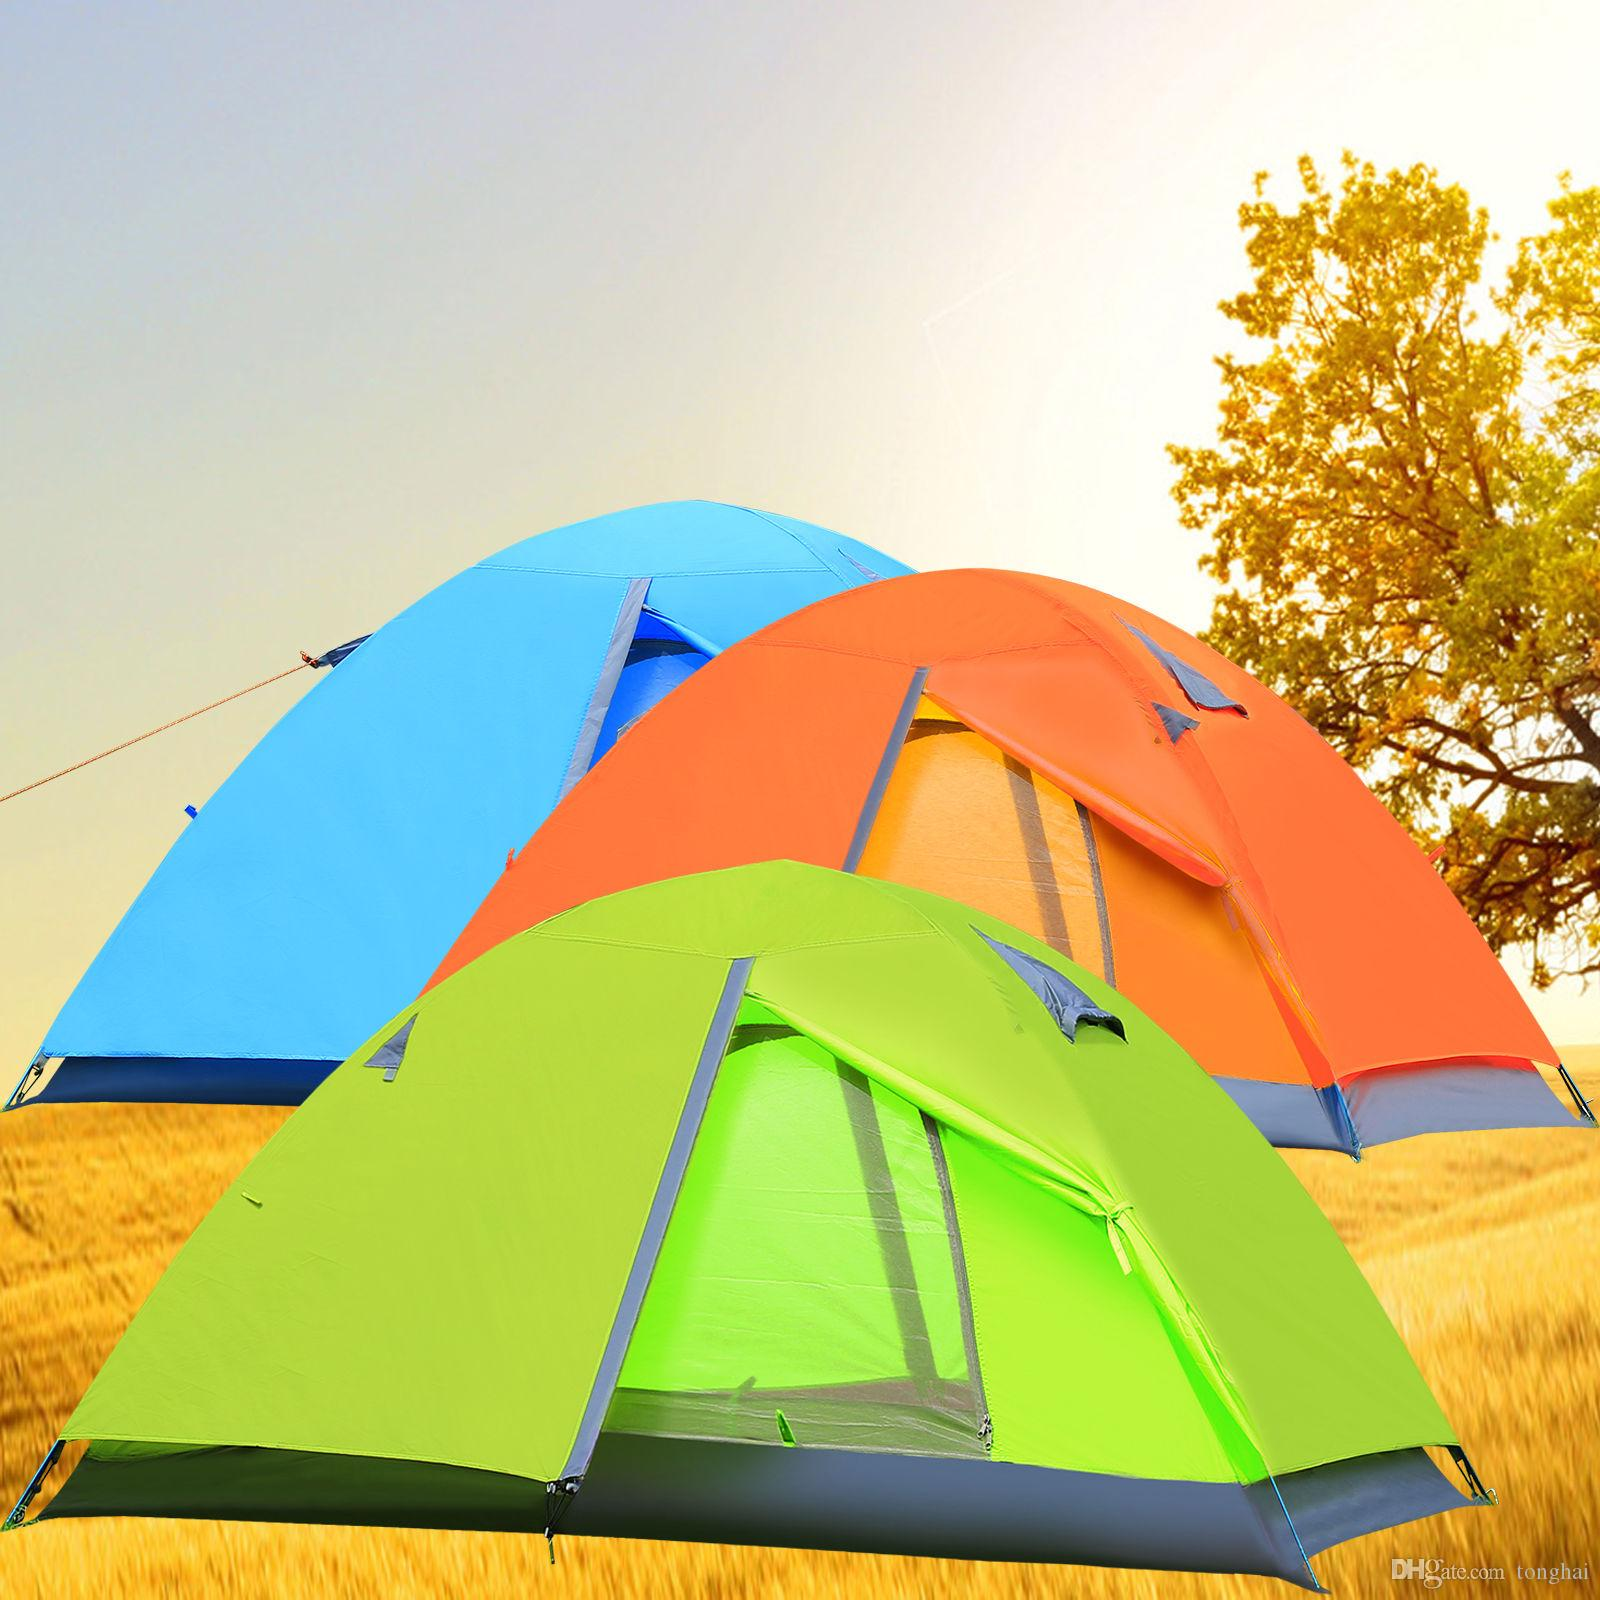 2 Person Hiking Dome Tent Outdoor Double Skin C&ing Tents 4 Season Double-wall Blueorange Light Green 2 Person Tent Double Skin Automatic Folding Online ...  sc 1 st  DHgate.com : 4 season tents cheap - memphite.com